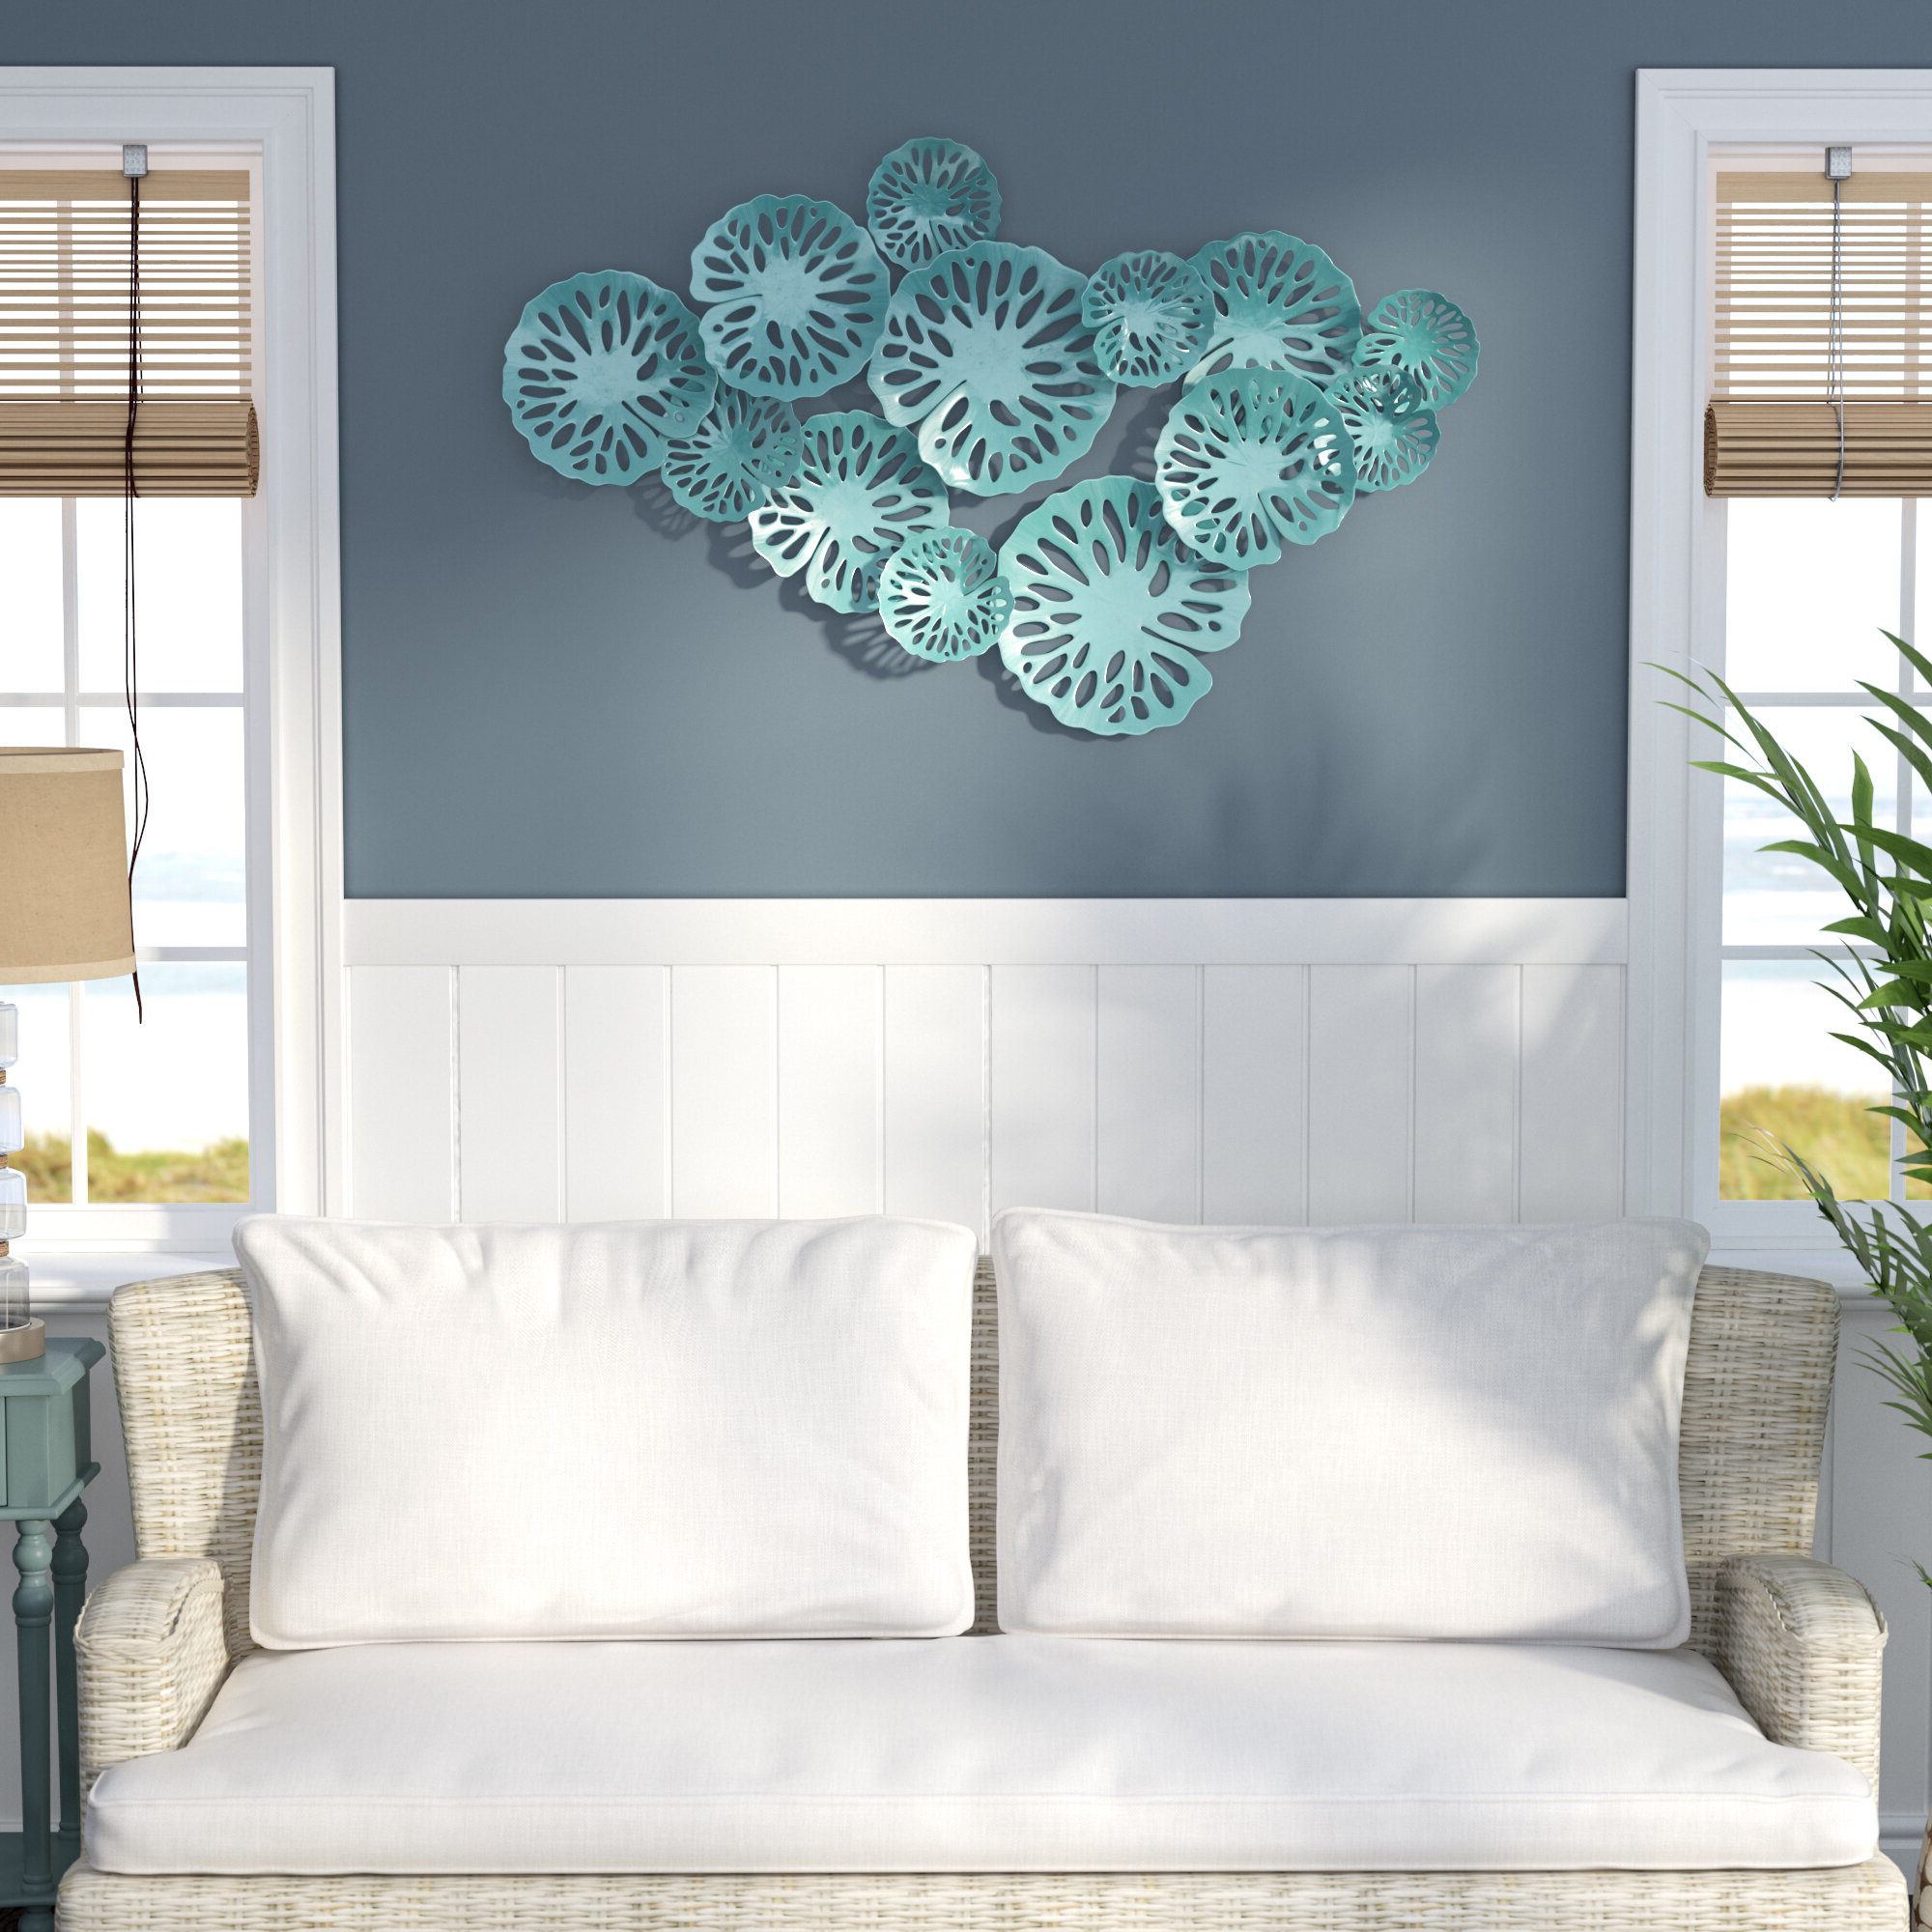 Sand Dollar Cluster Wall Décor Throughout Fashionable Sand Dollar Cluster Wall Décor (View 1 of 20)